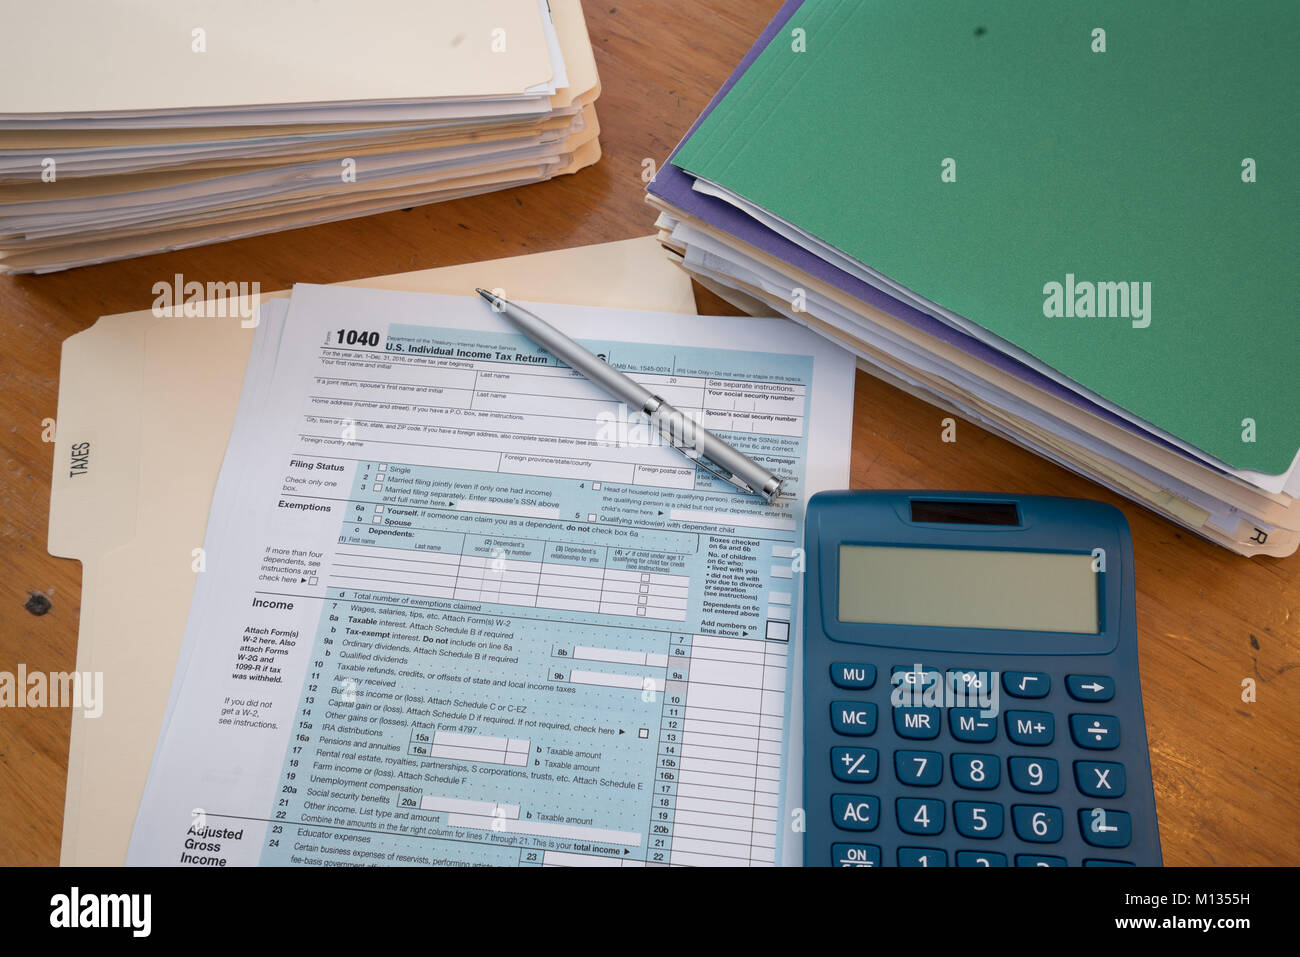 1040 tax form stock photos 1040 tax form stock images alamy irs tax form with tax records in folders calculator and pen stock image falaconquin